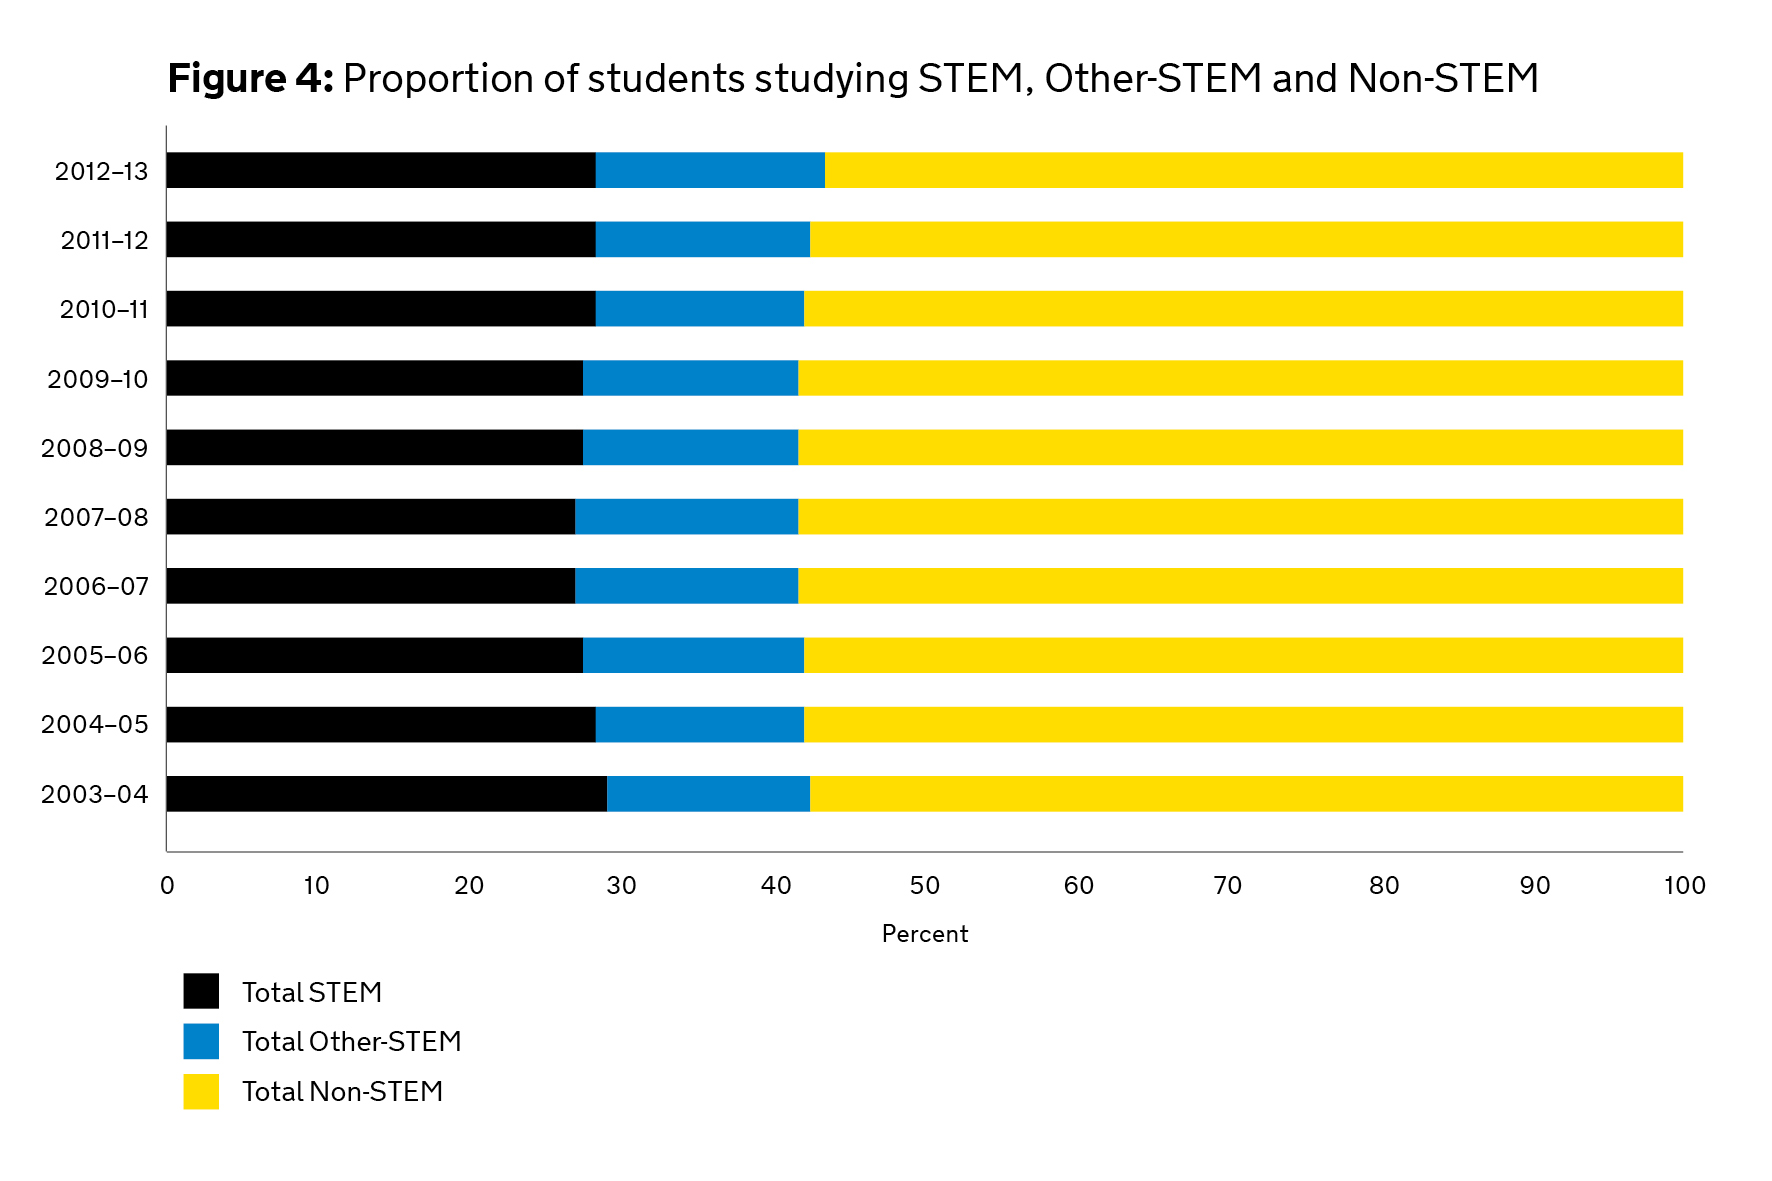 Graph showing Proportion of students studying STEM, Other-STEM and Non-STEM